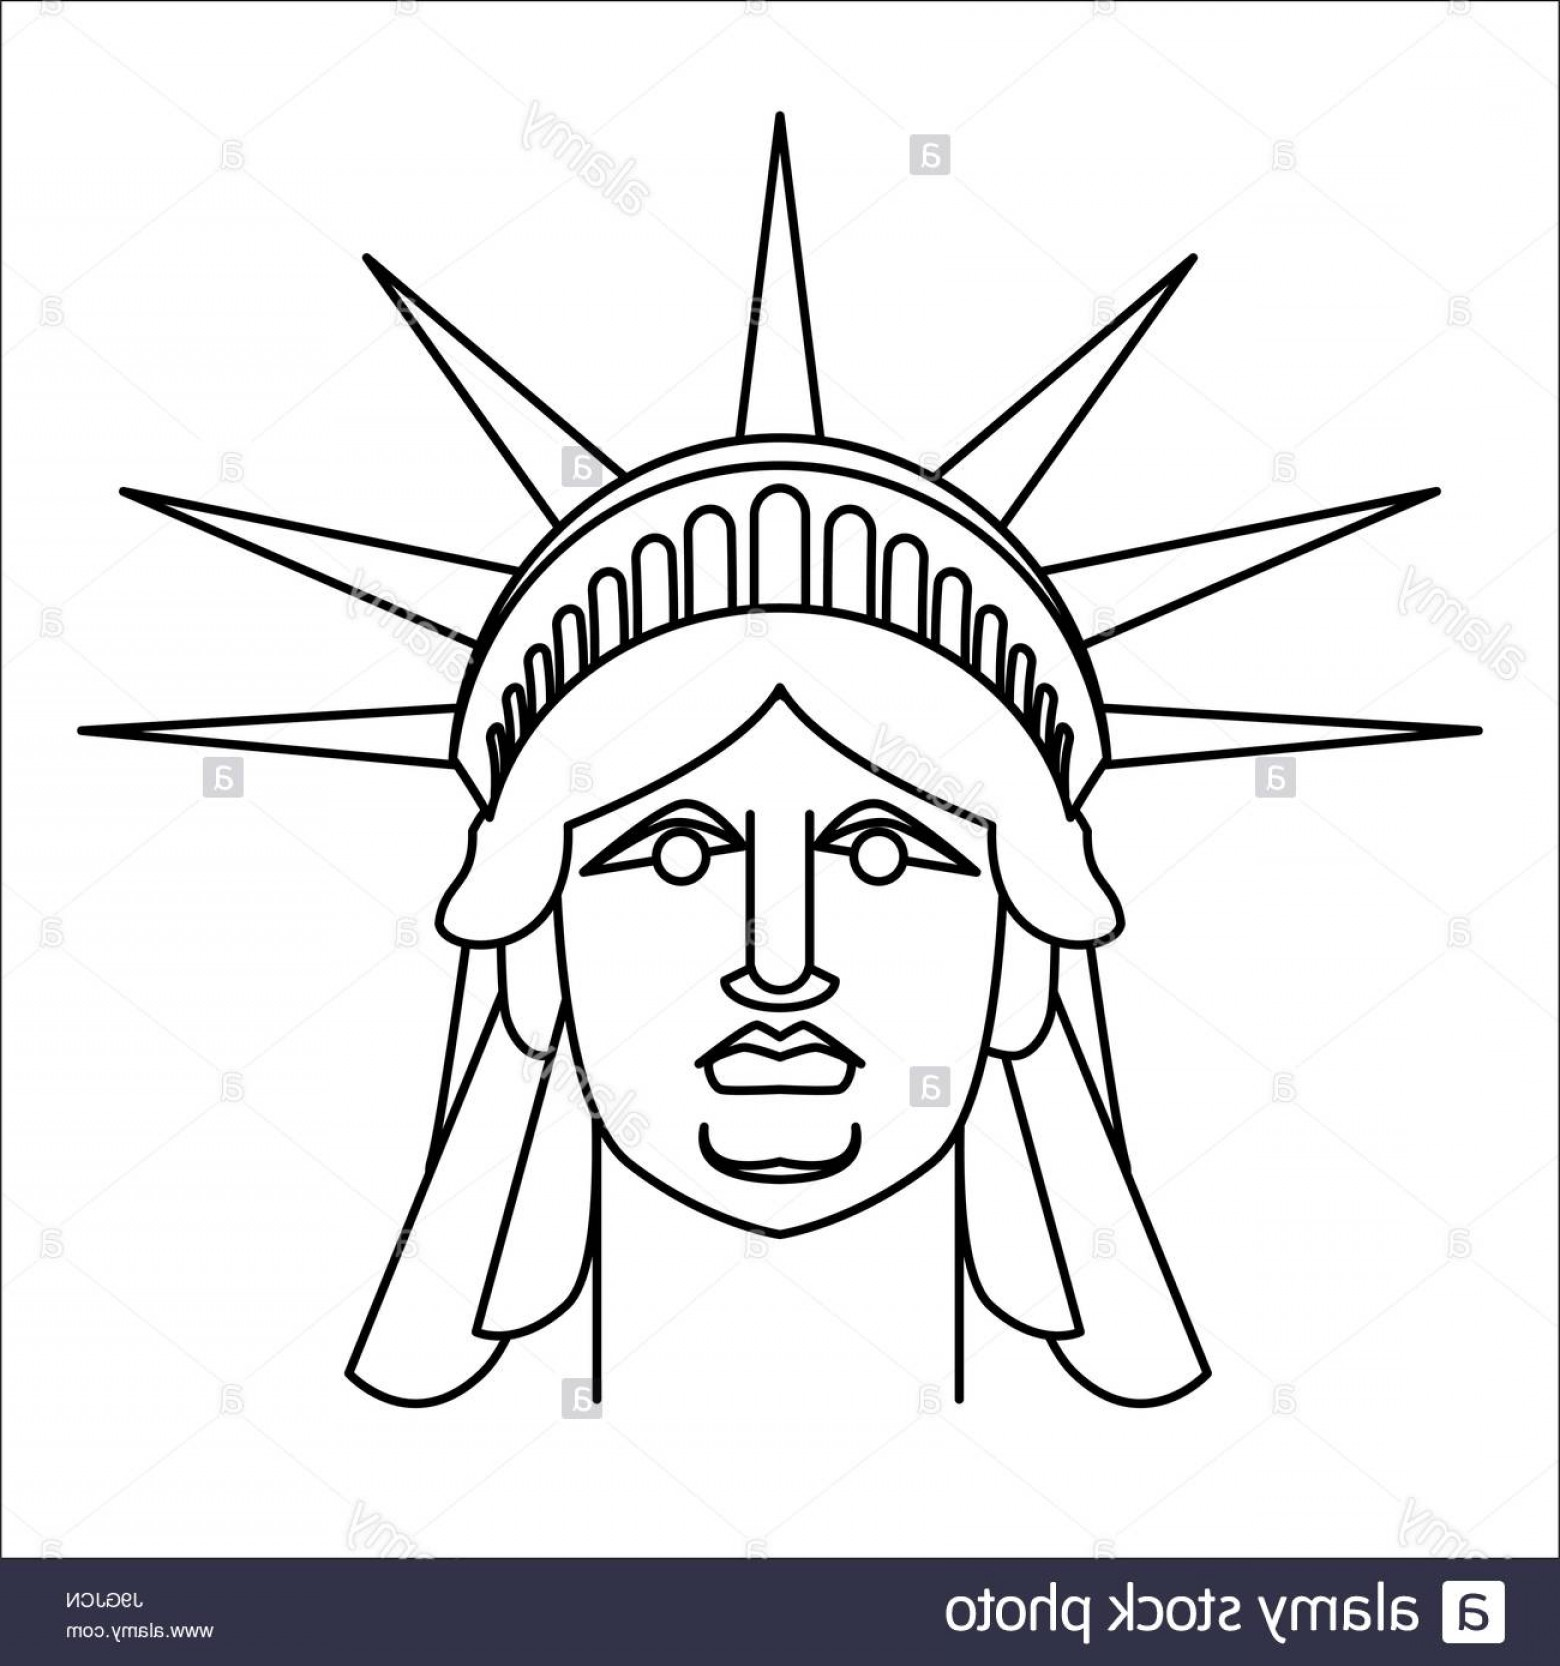 Statue Of Liberty Face Vector: Stock Photo Head Of Statue Of Liberty Linear Style Face Sculpture America Monument